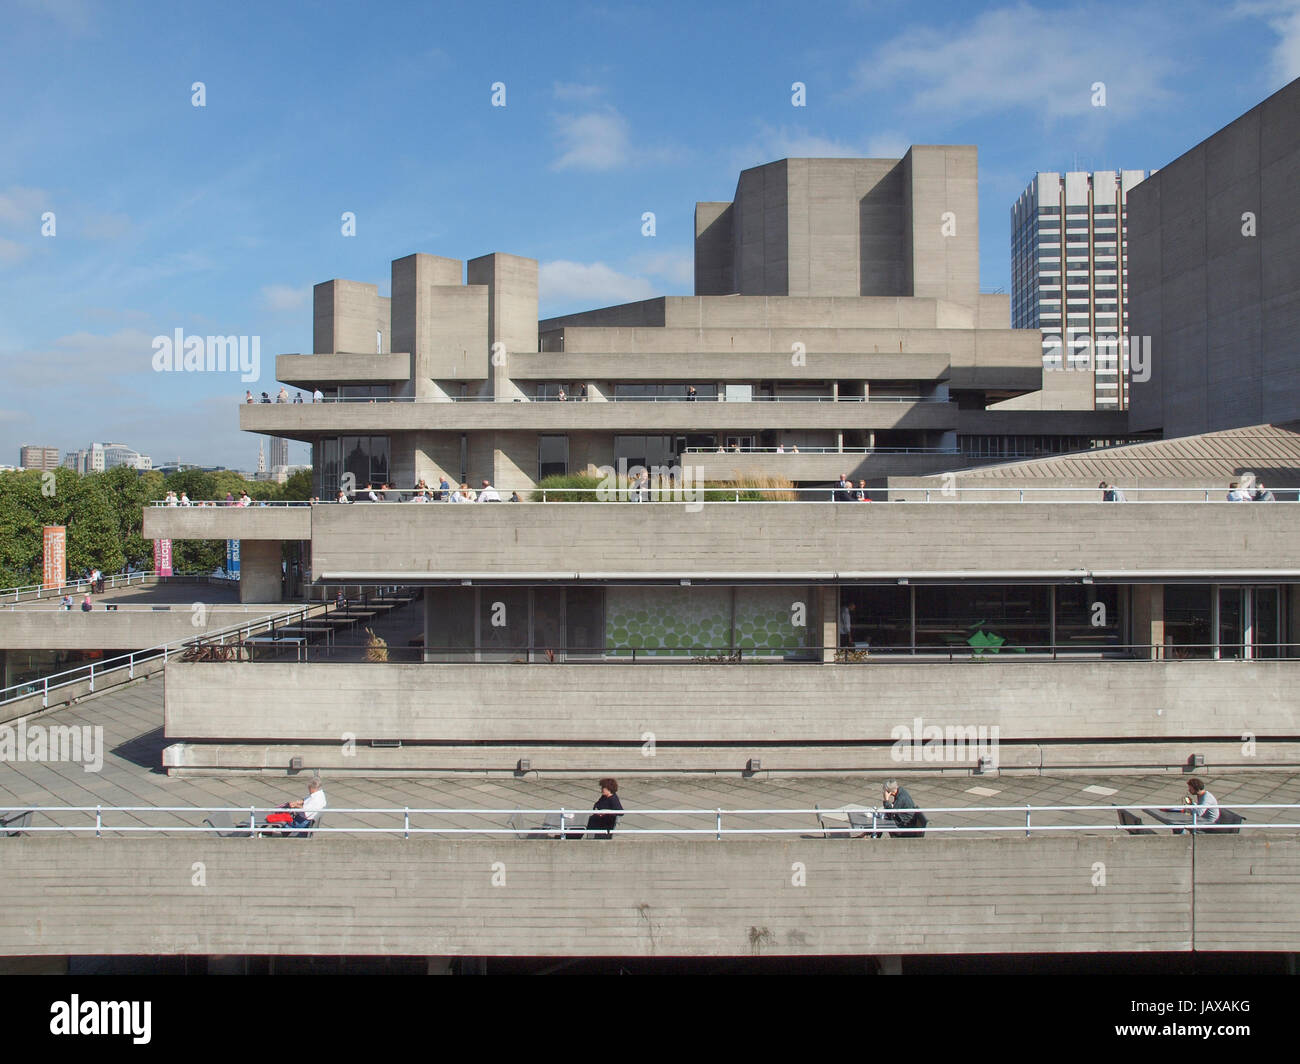 LONDON, ENGLAND, UK - SEPTEMBER 27, 2011: The Royal National Theatre iconic masterpiece of the New Brutalism designed by architect Sir Denys Lasdun Stock Photo